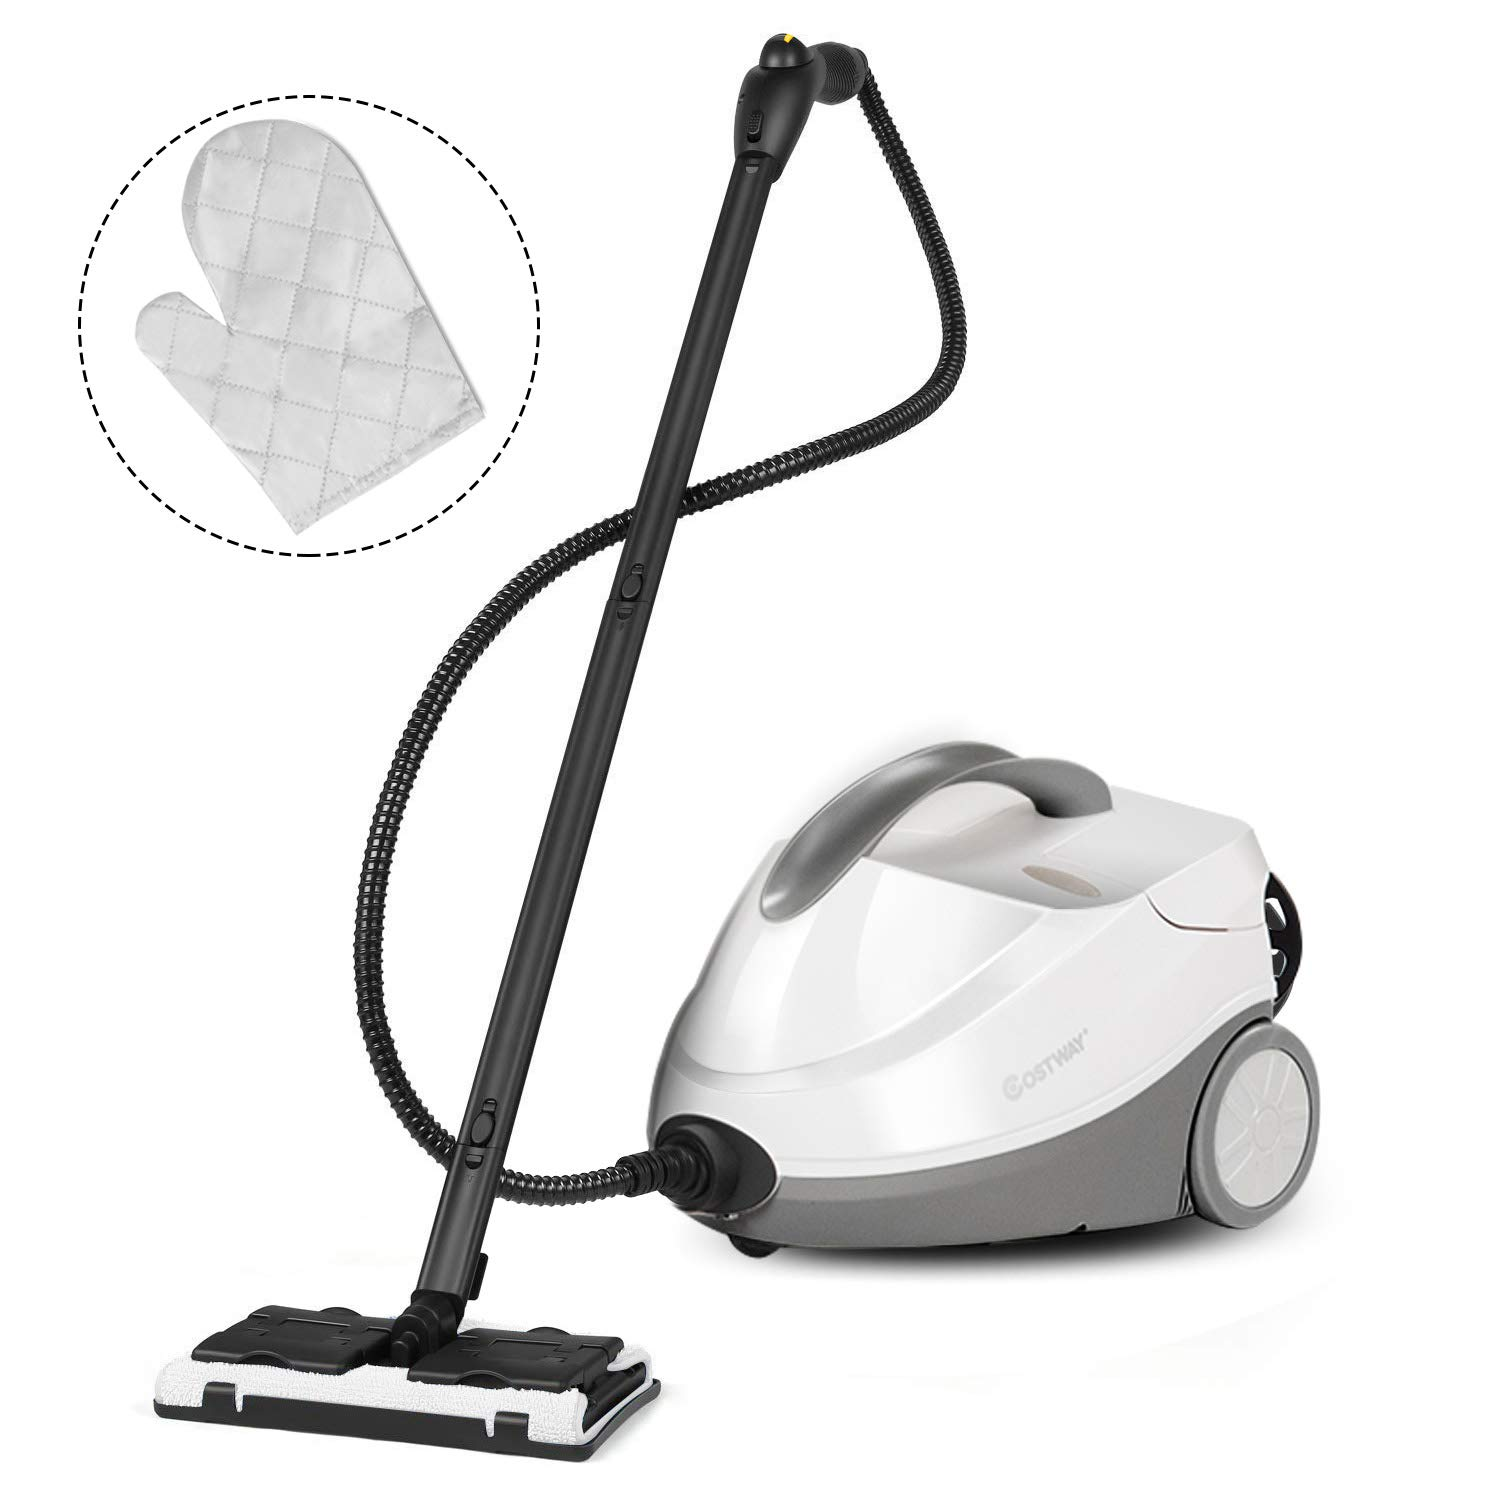 COSTWAY Multipurpose Steam Cleaner with 17 Accessories, 2000W Heavy Duty Steamer Chemical-Free Cleaning, 1.5L Dual-Tank Cleaning Machine for Carpet, Floors, Windows and Cars by COSTWAY